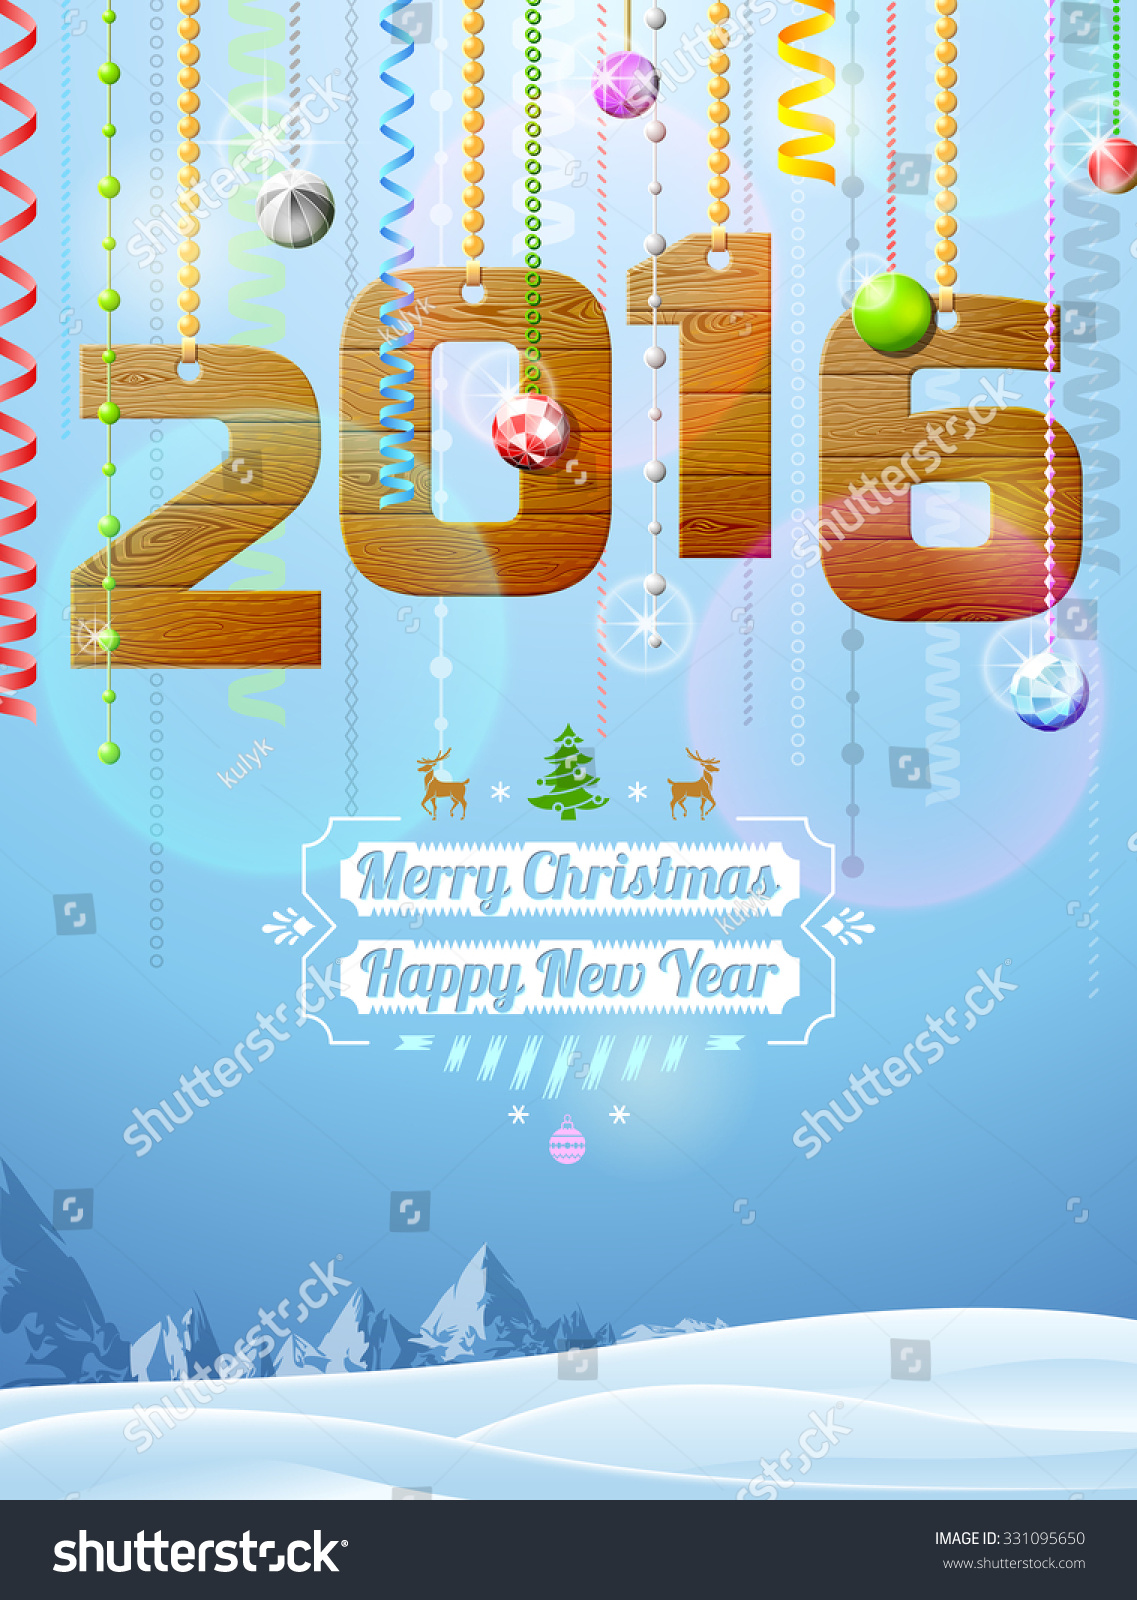 Winter landscape with christmas congratulation Qualitative vector illustration for new year's day christmas winter holiday new year's eve silvester etc